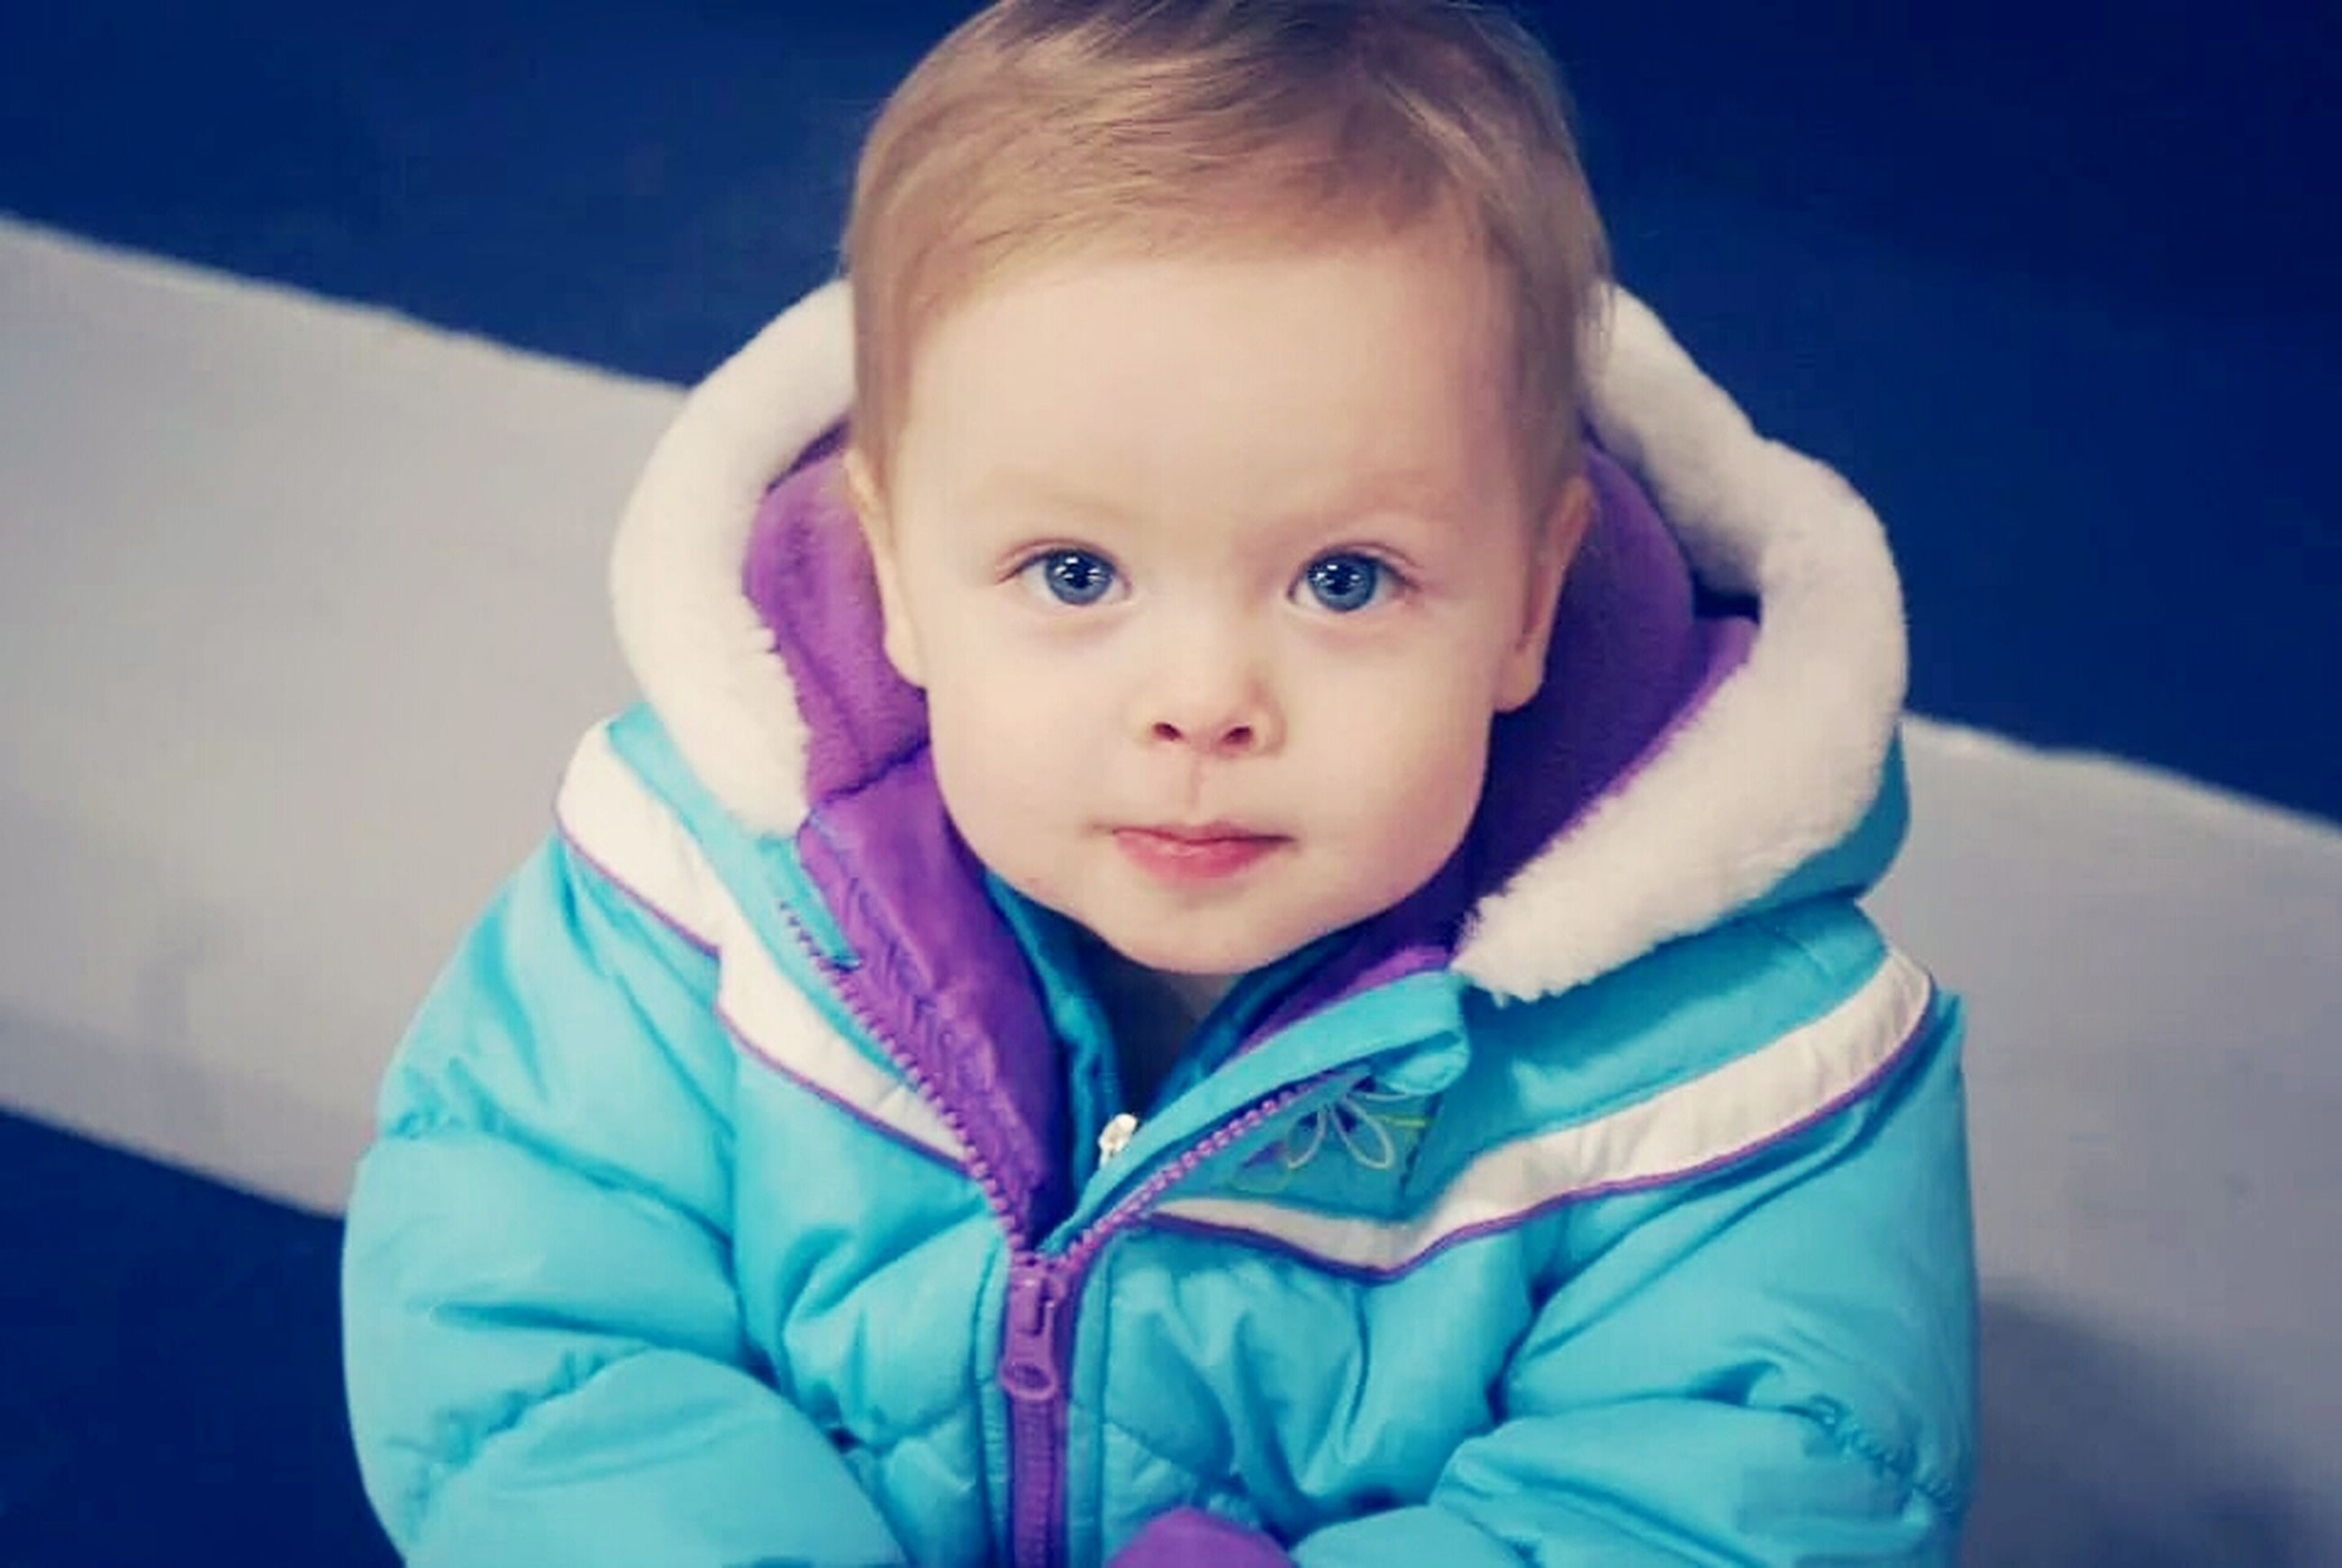 childhood, innocence, elementary age, cute, person, boys, portrait, looking at camera, girls, front view, casual clothing, blue, toddler, babyhood, lifestyles, baby, leisure activity, indoors